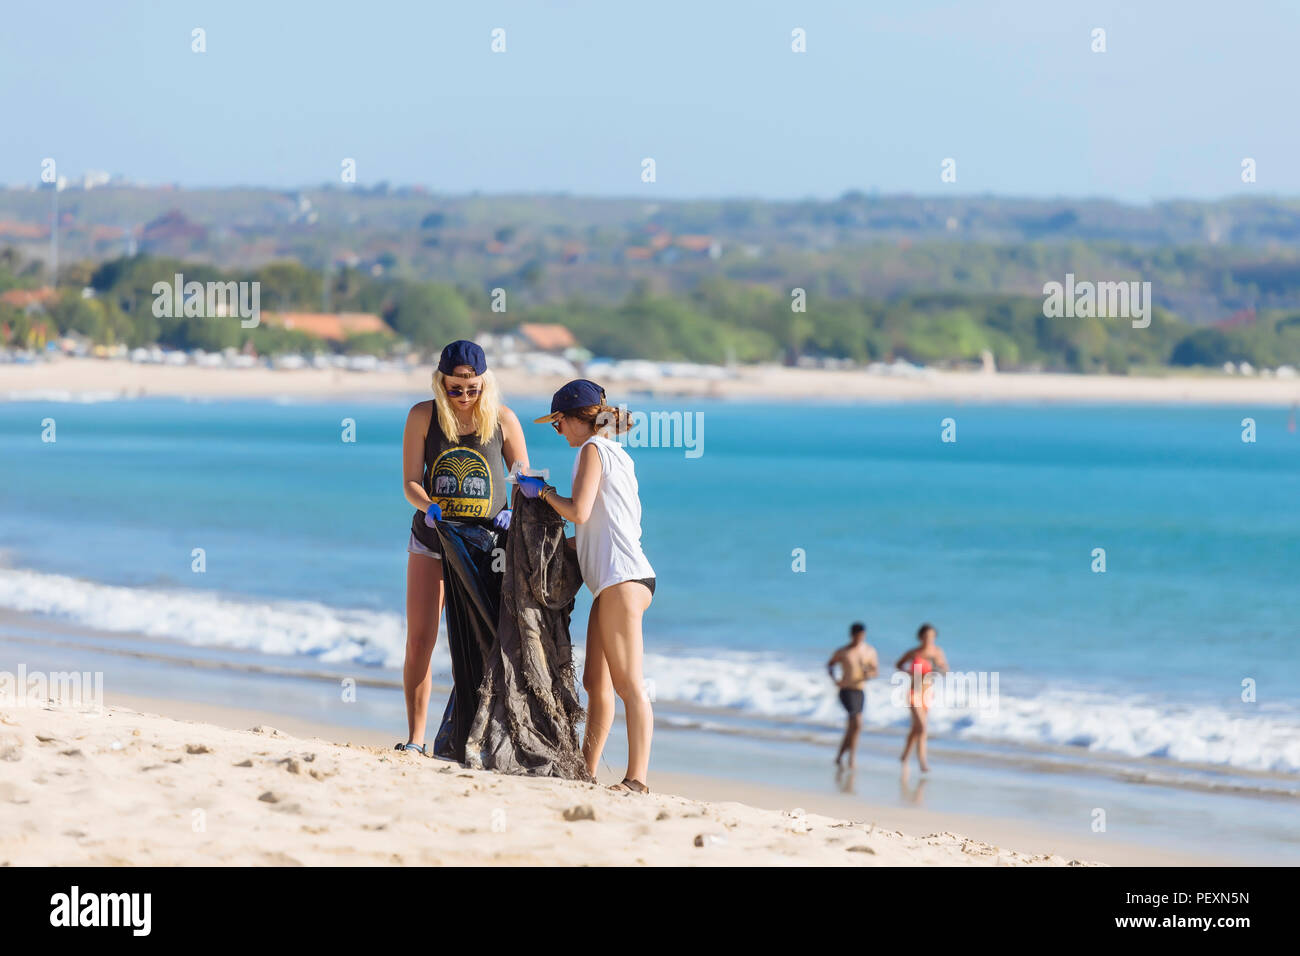 Women picking up trash at beach, Jimbaran, Bali, Indonesia - Stock Image